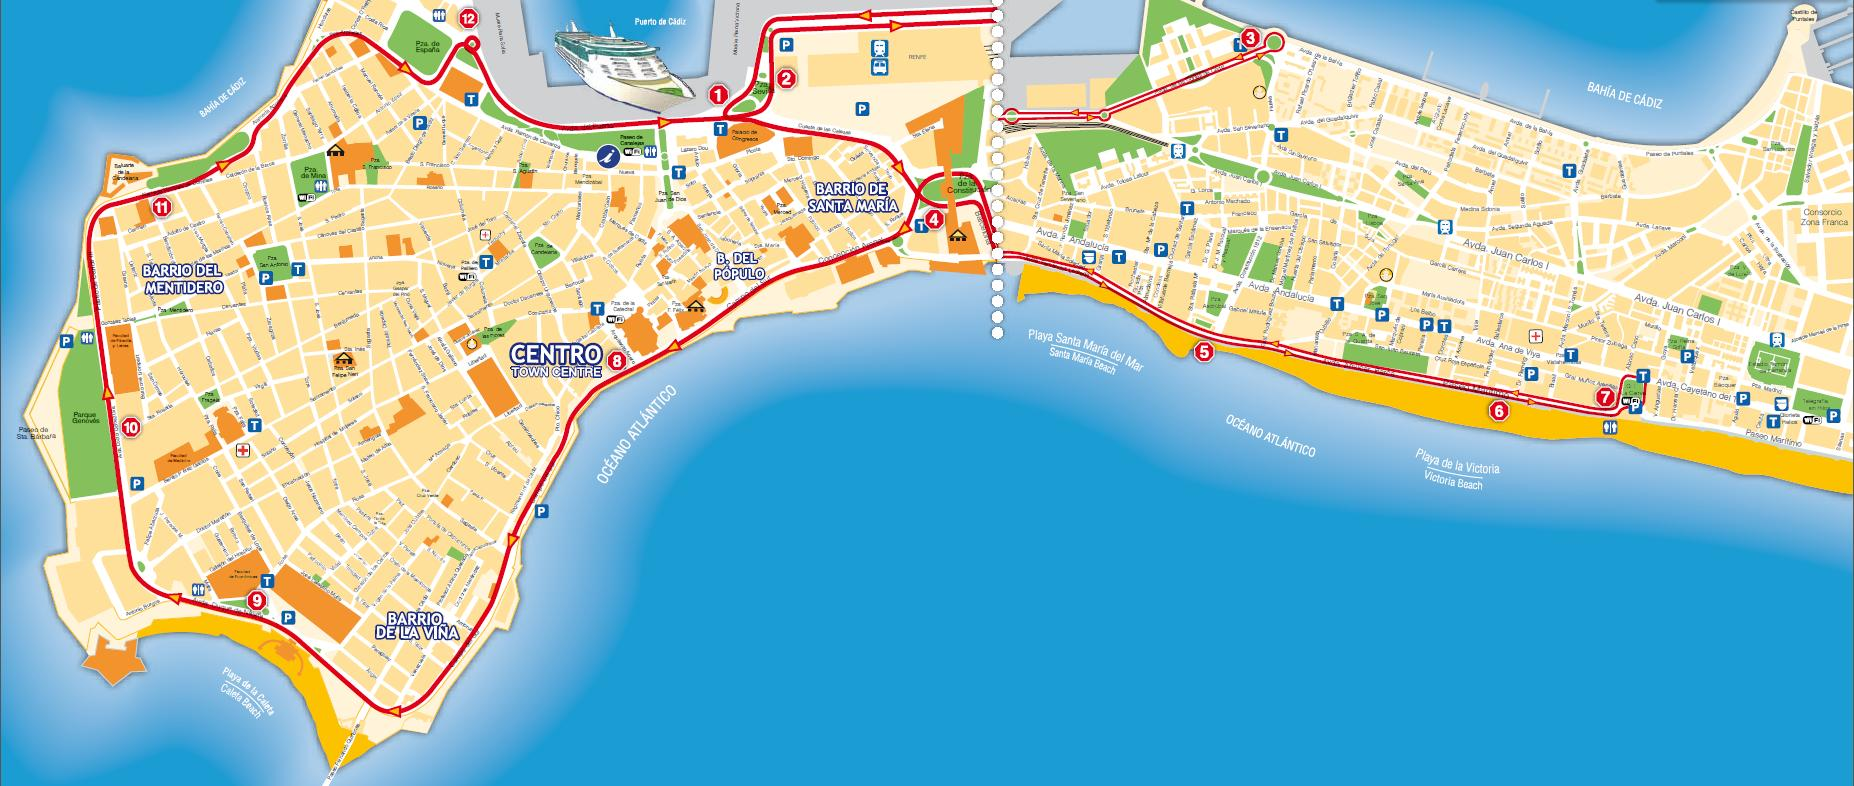 Cadiz City Sightseeing HopOn HopOff Bus Tour in Cdiz Lonely Planet